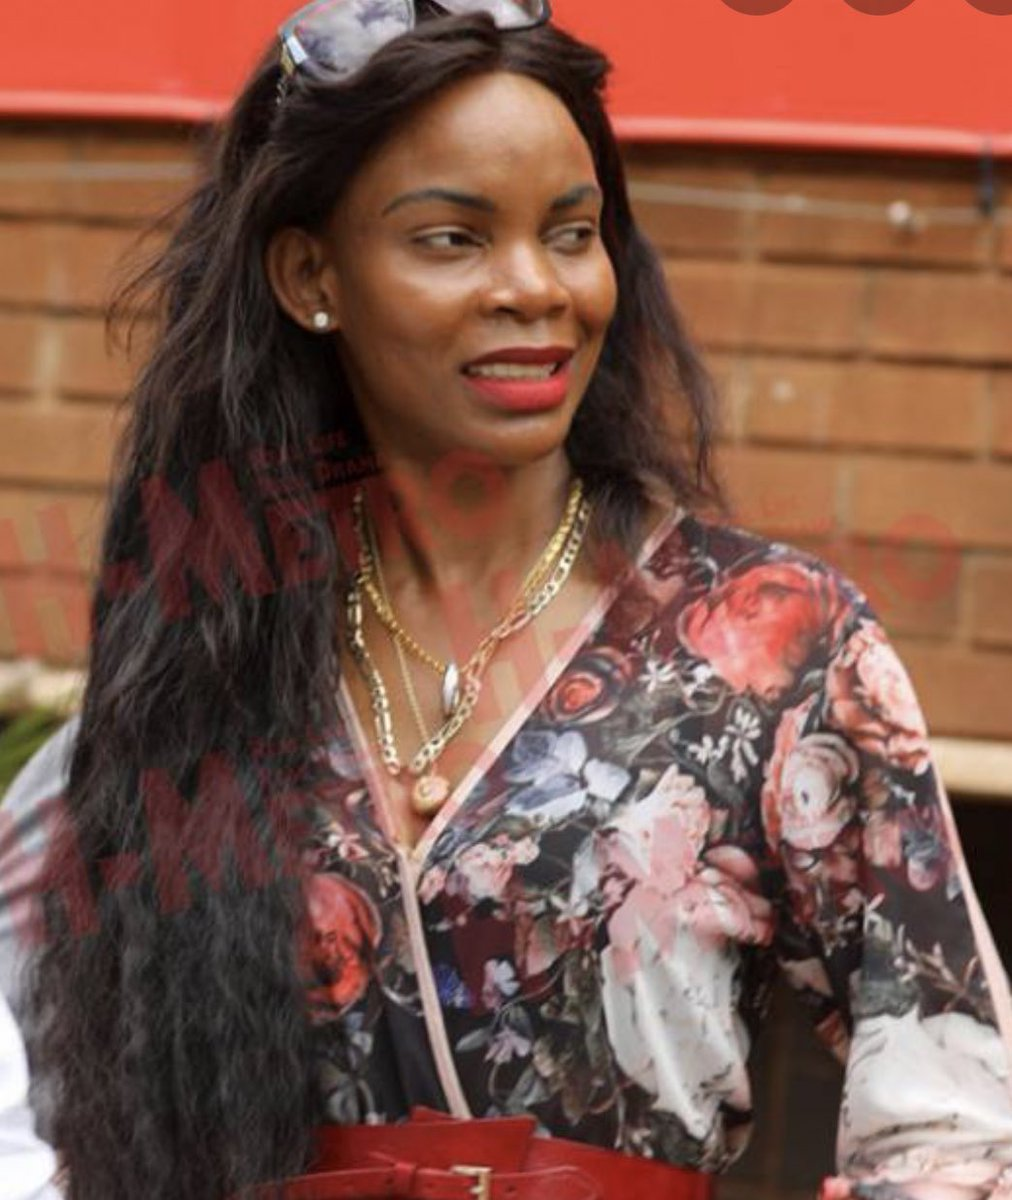 MARRY IN AMBULANCE Hours after a warrant of arrest was issued against Marry Mubaiwa, who failed to attend court this morning, an ambulance believed to be carrying her has now arrived at the Harare Magistrates' Court @larry_moyo @Zvikoeashleigh @restmutore @Lattynyangu